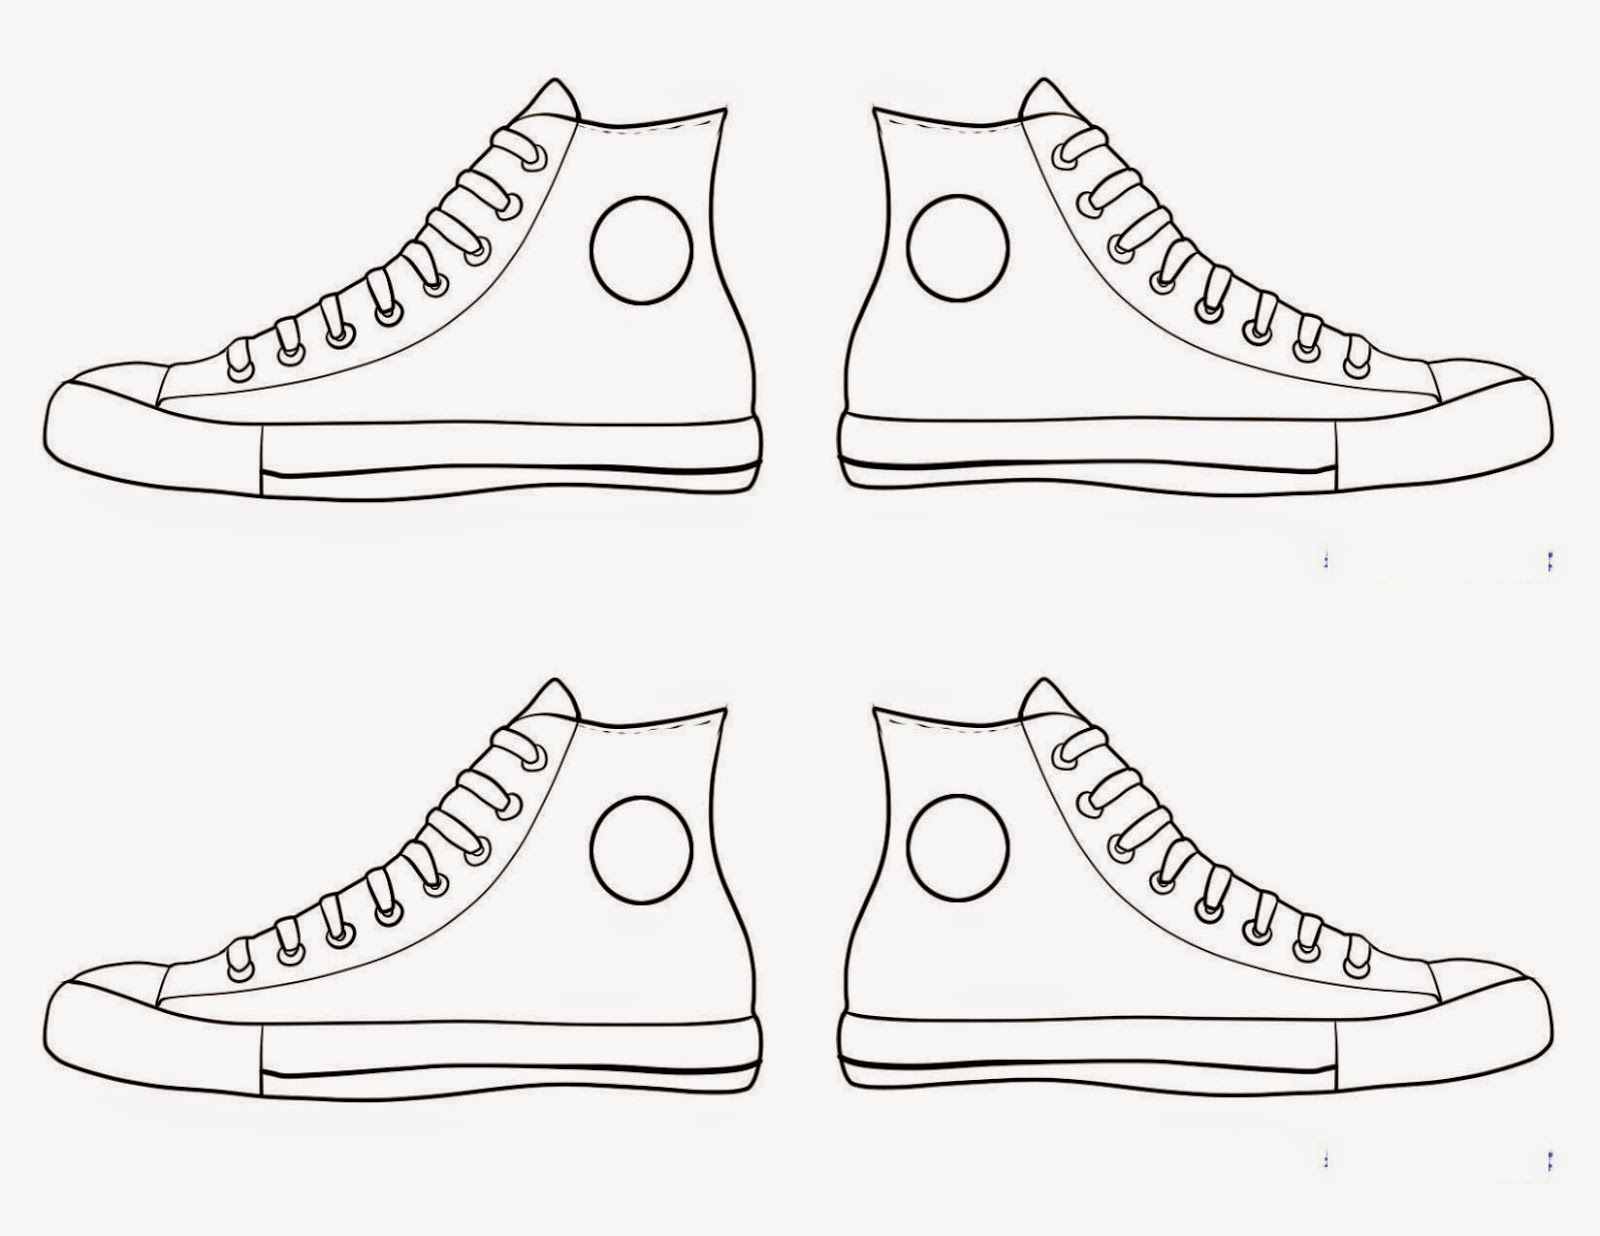 Converse clipart school shoe Print coloring shoe pattern Template